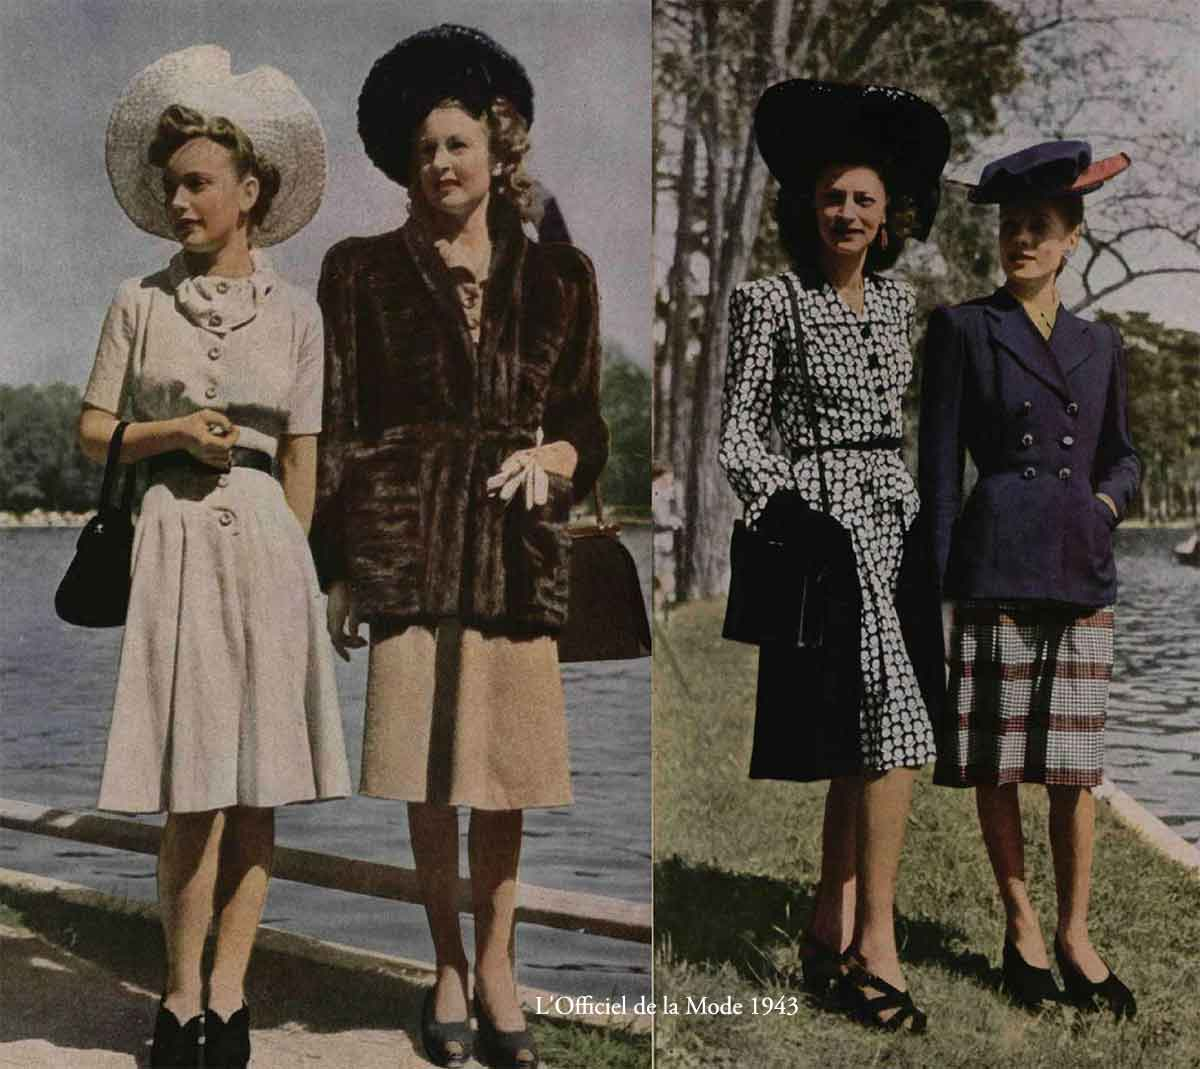 e4f4f656674 History of 1940s Fashion - 1940 to 1949